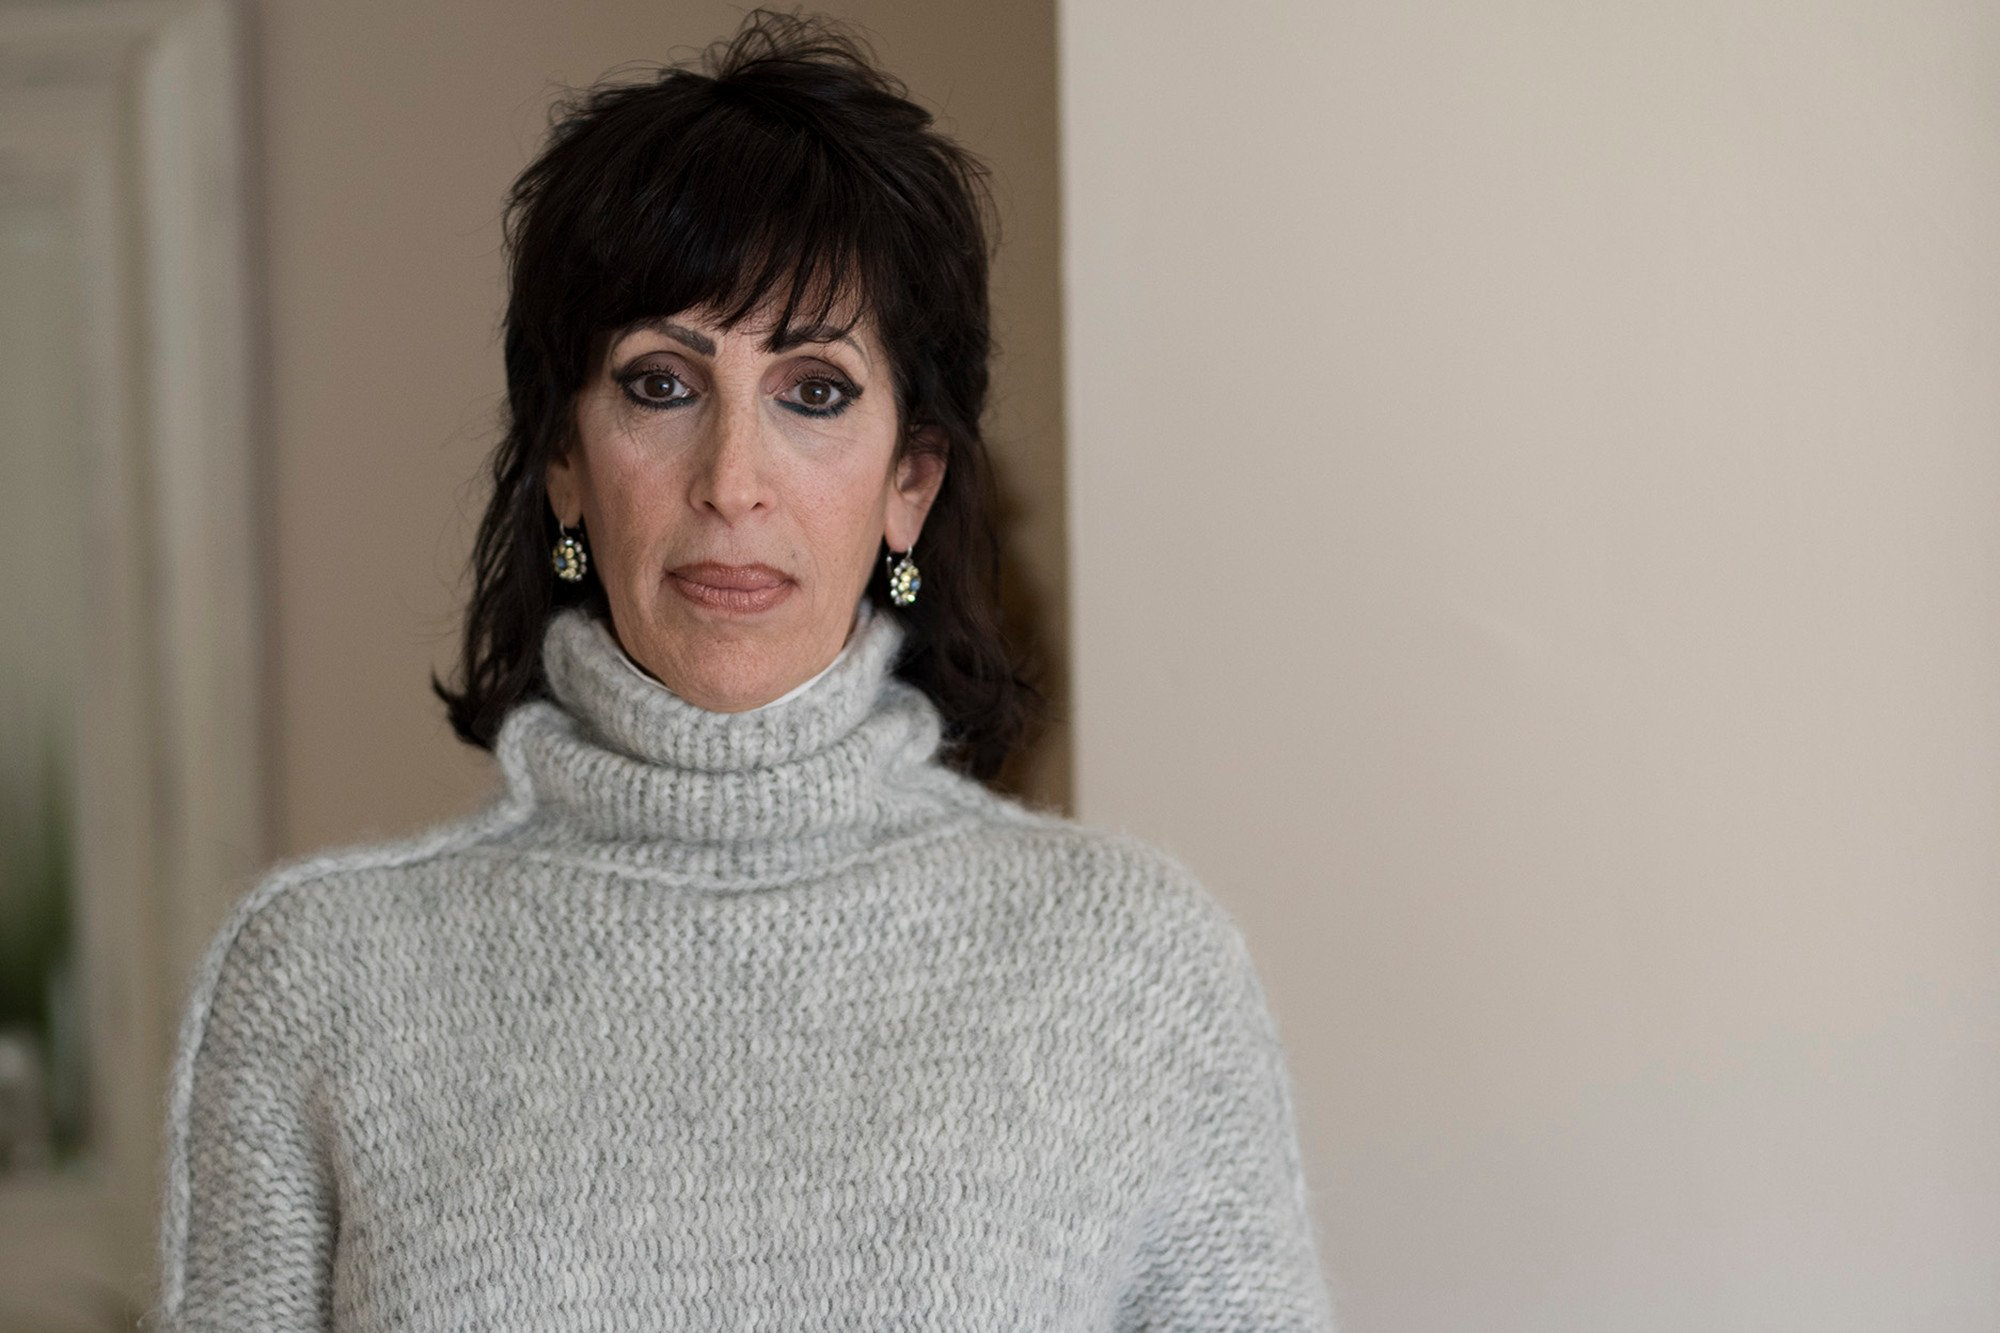 Alleged sex assault victim's case reopened over a decade later